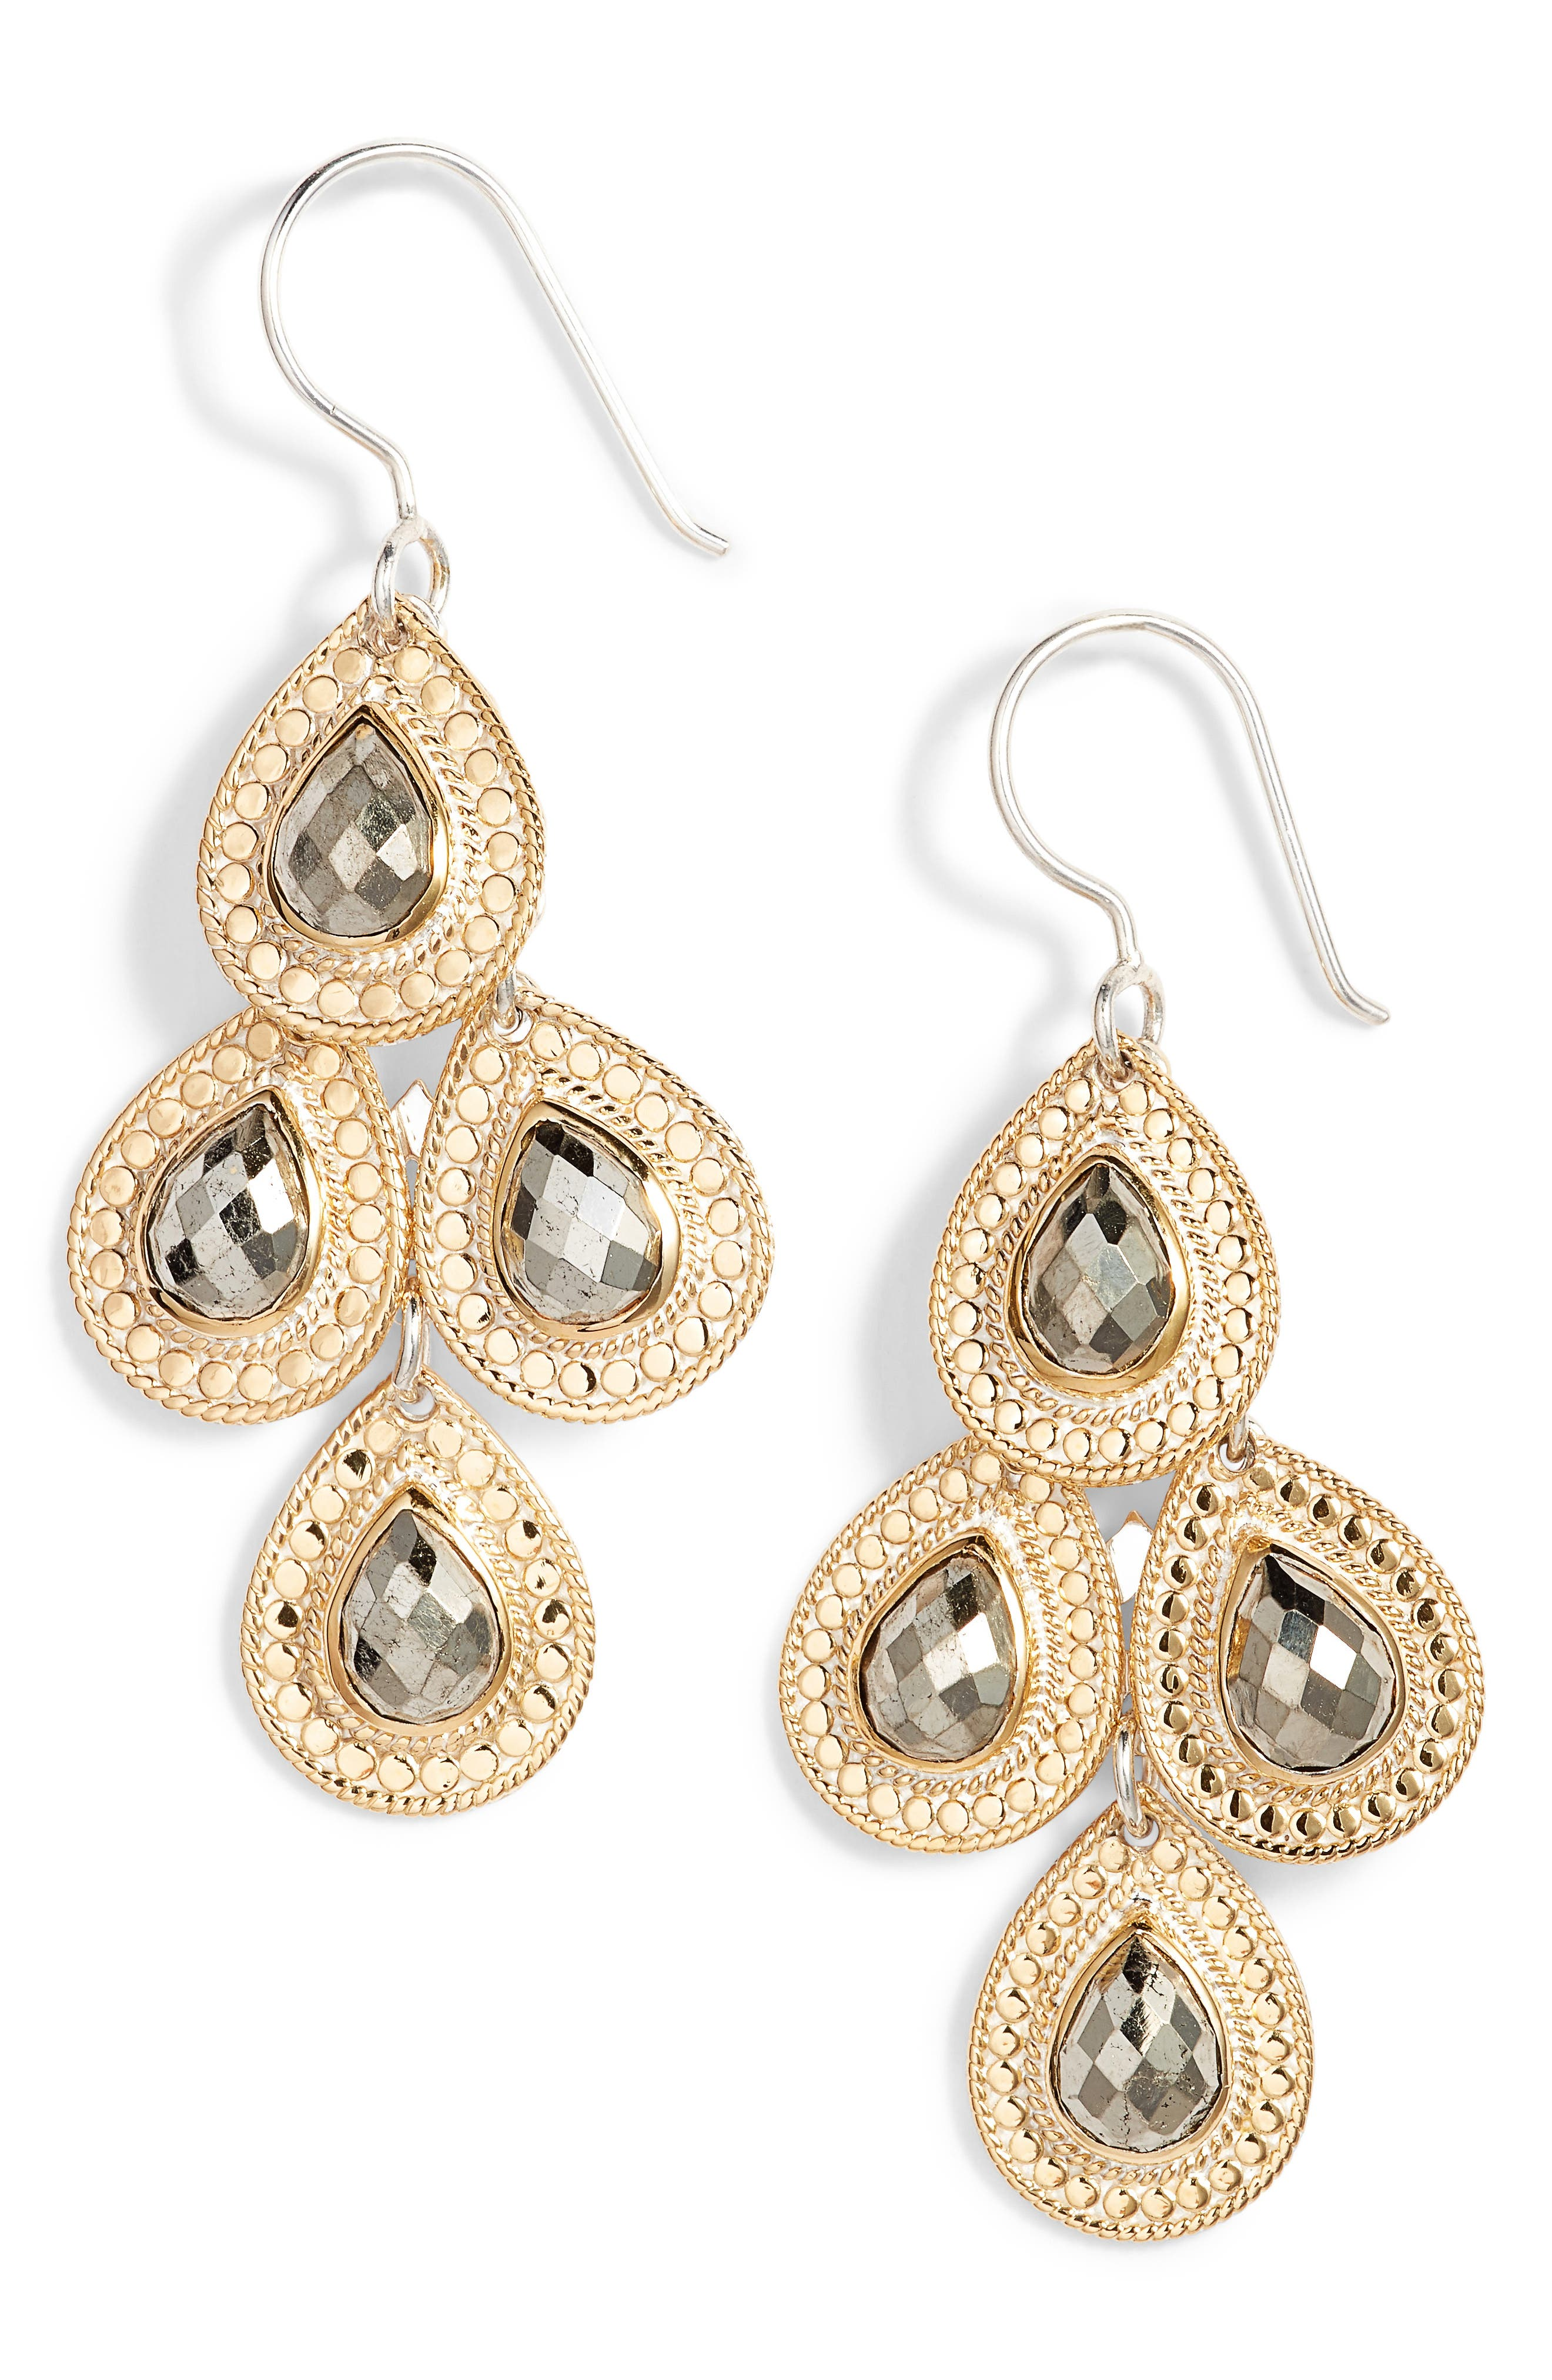 Stone Chandelier Earrings,                         Main,                         color, Gold/ Silver/ Pyrite